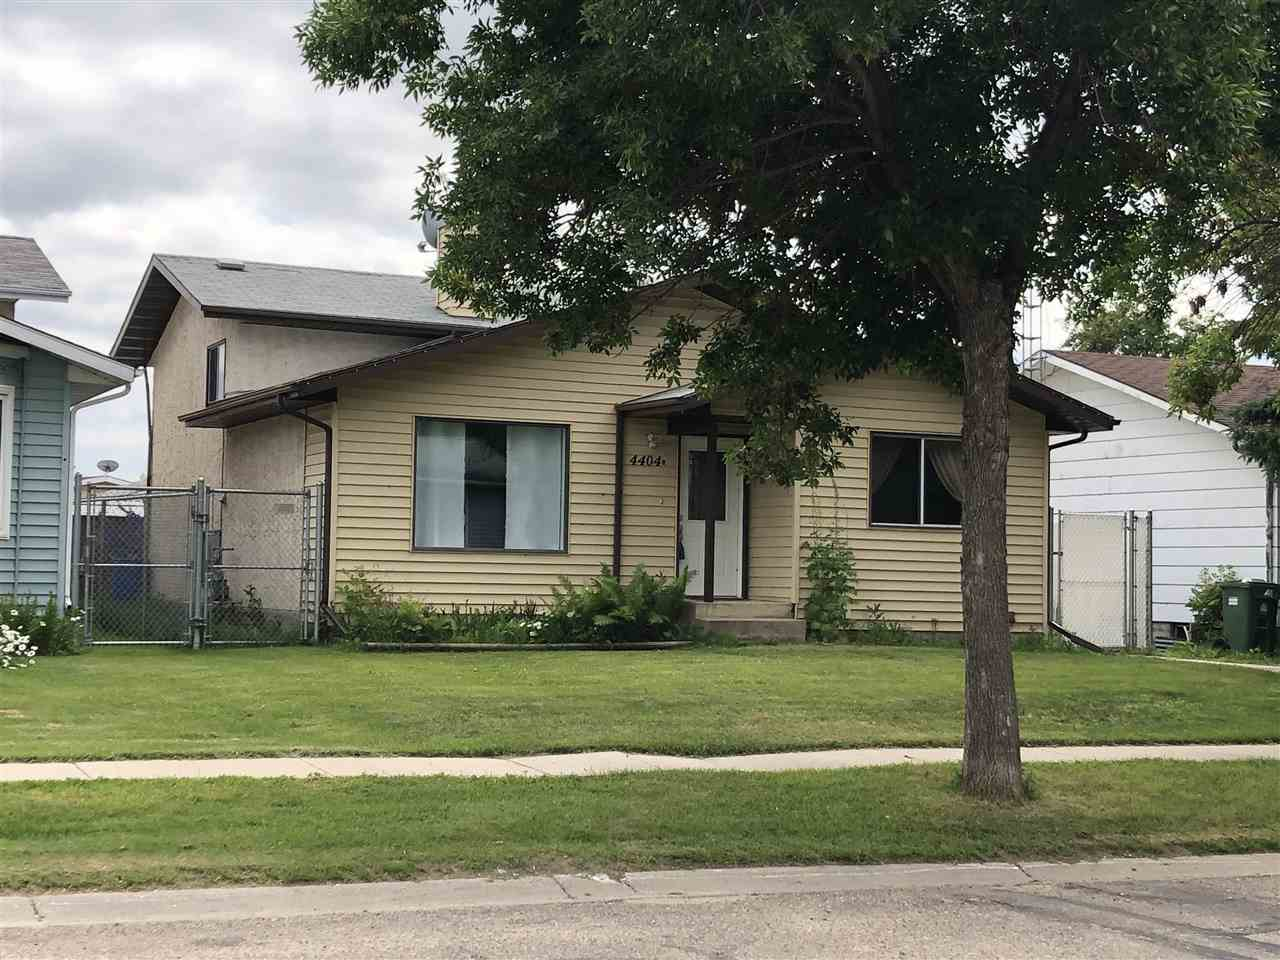 MLS® listing #E4151589 for sale located at 4404W - 49 Ave